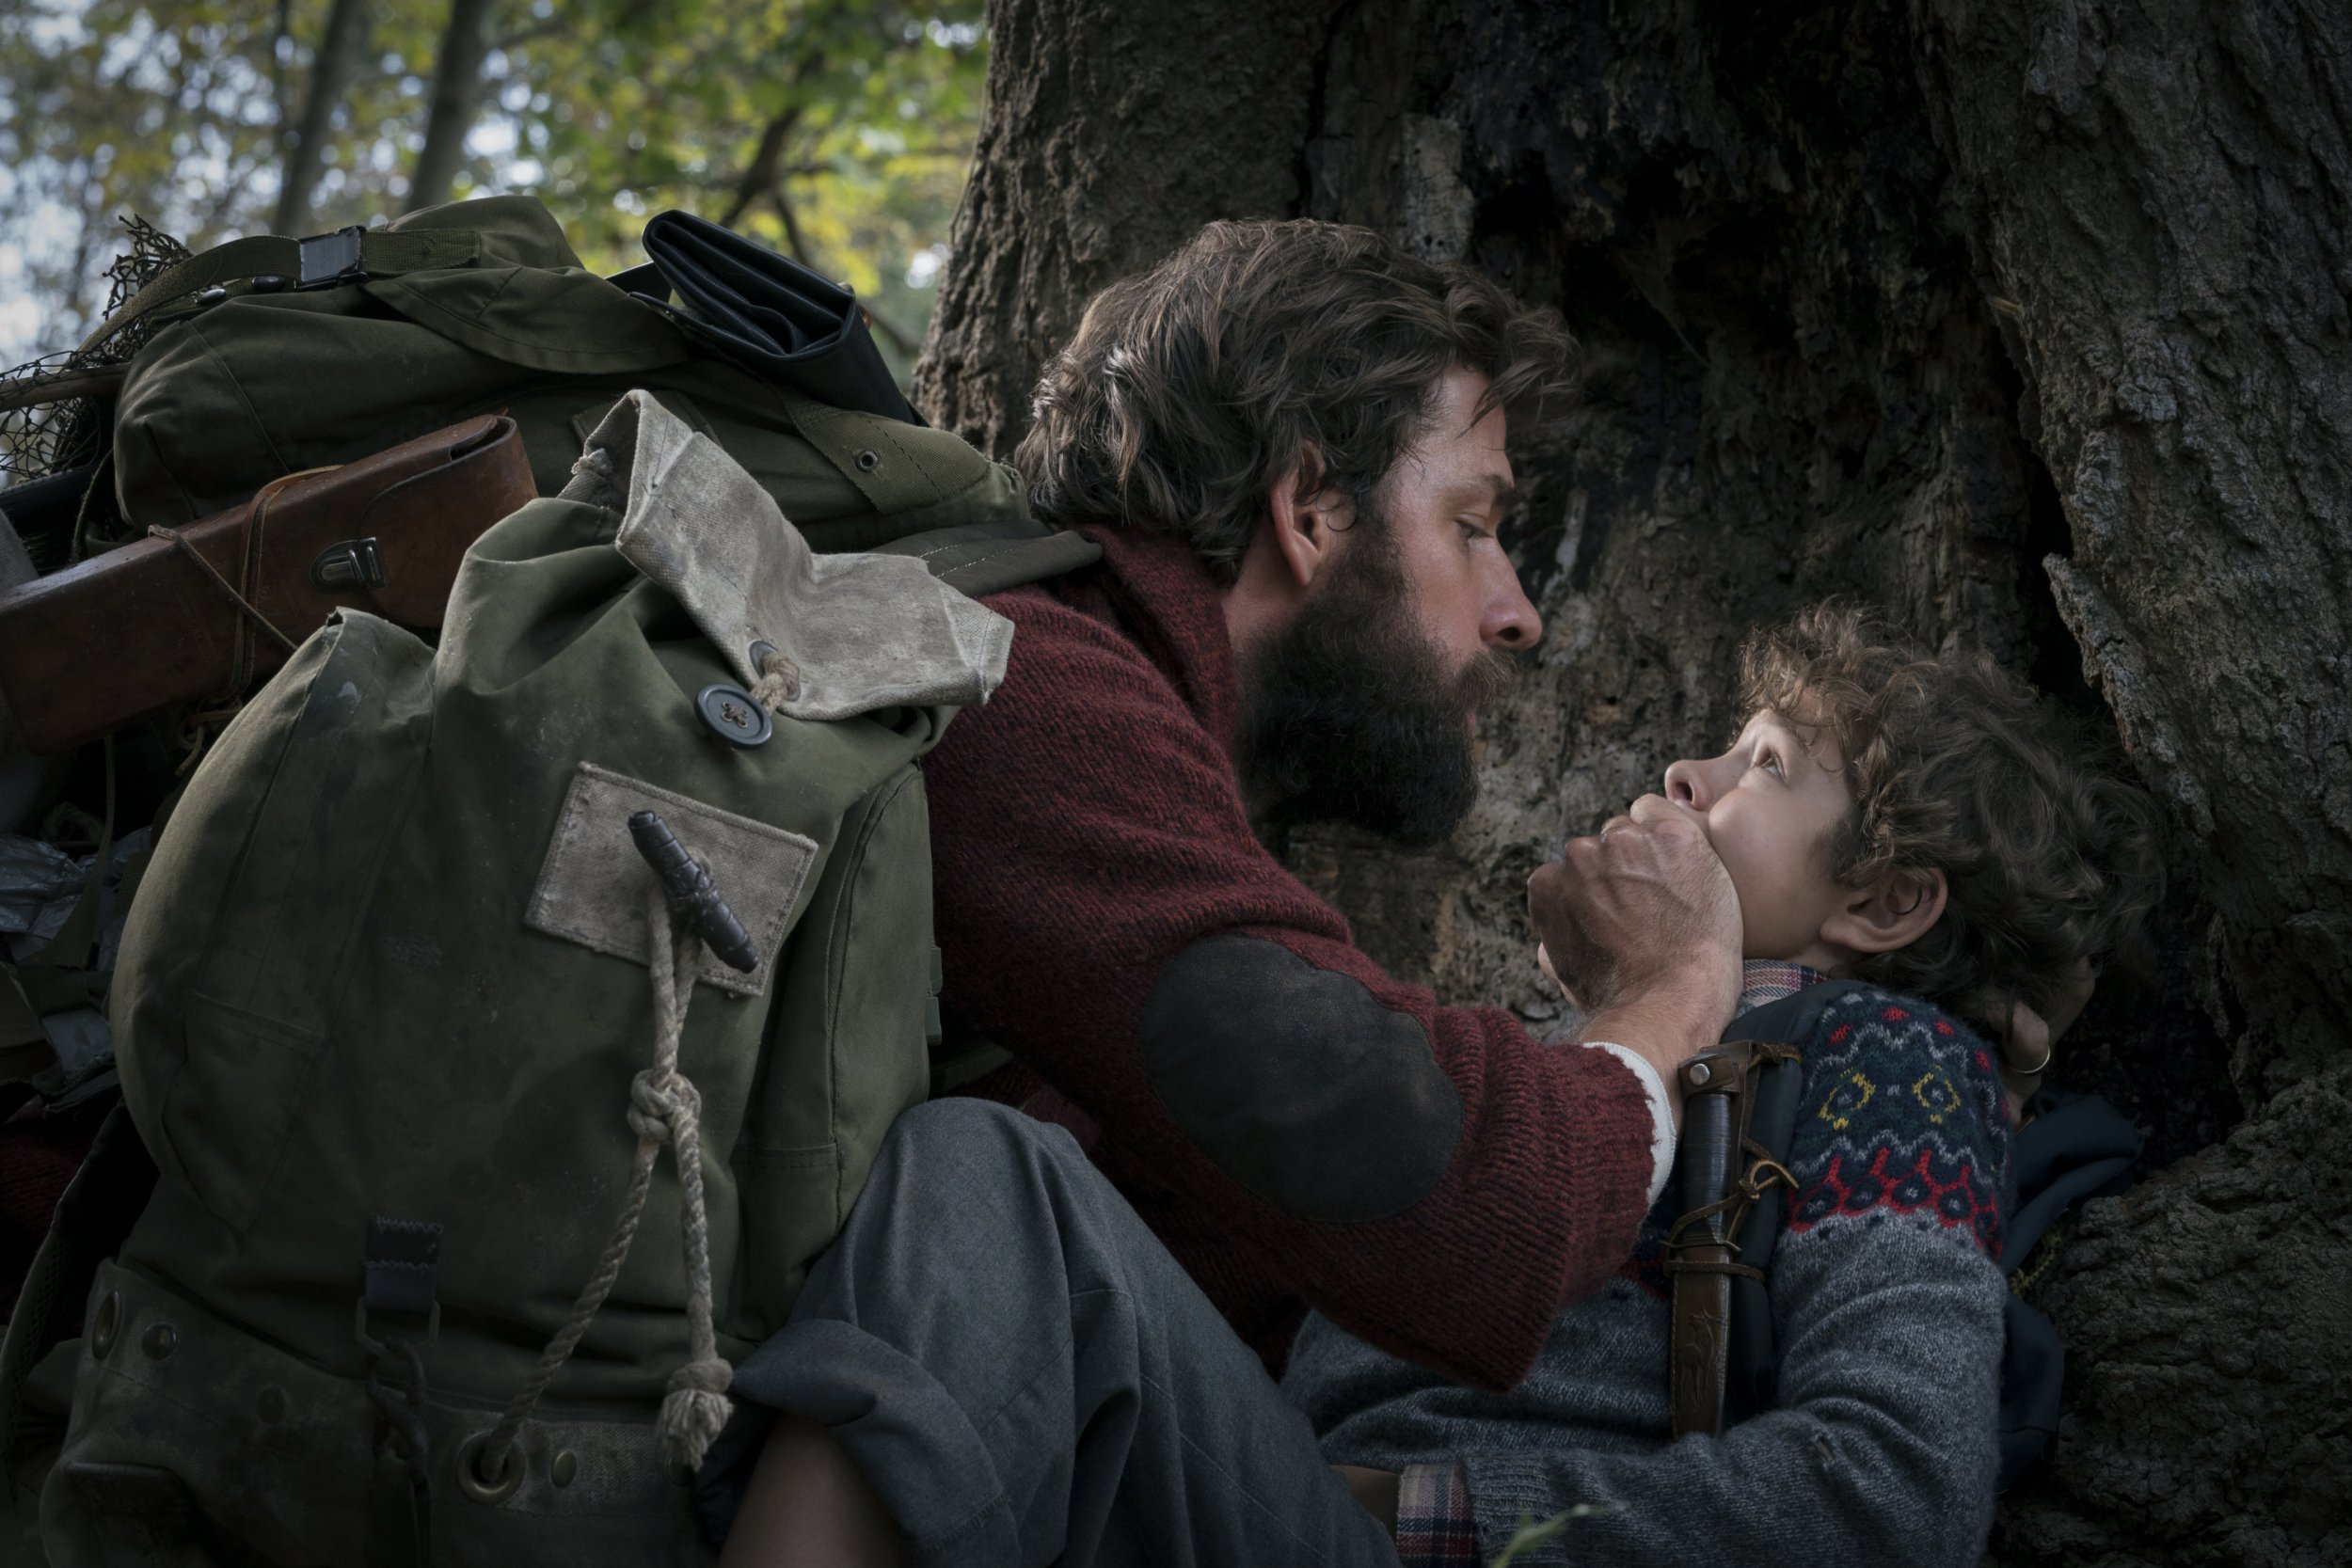 In the modern horror thriller A QUIET PLACE, a family of four must navigate their lives in silence after mysterious creatures that hunt by sound threaten their survival. If they hear you, they hunt you.